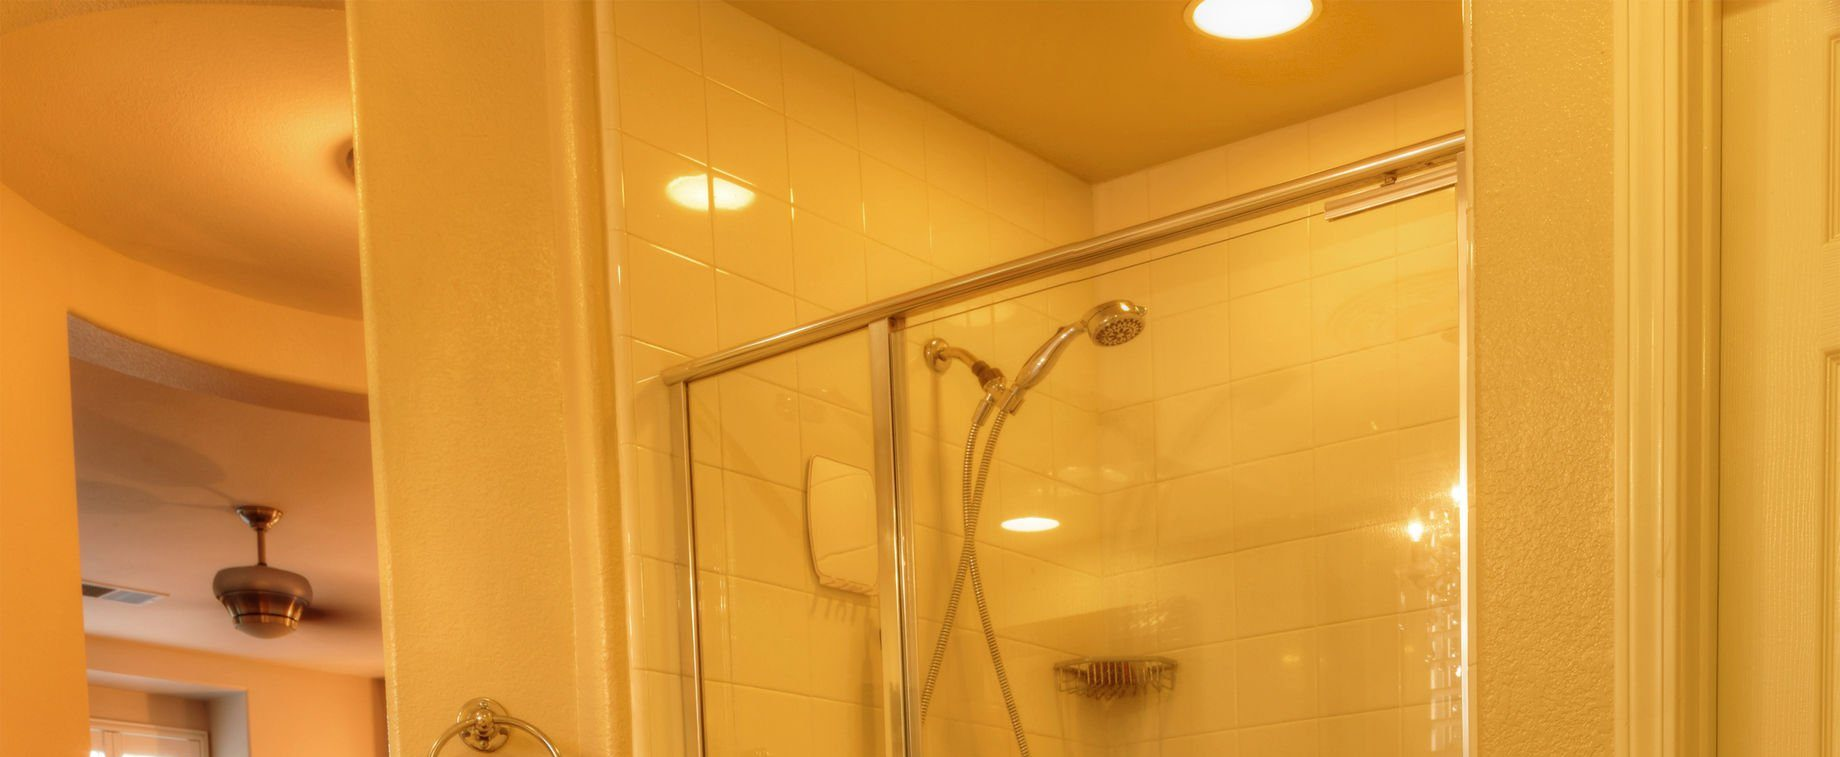 4 Ways To Use Recessed Lighting In Small Bathrooms